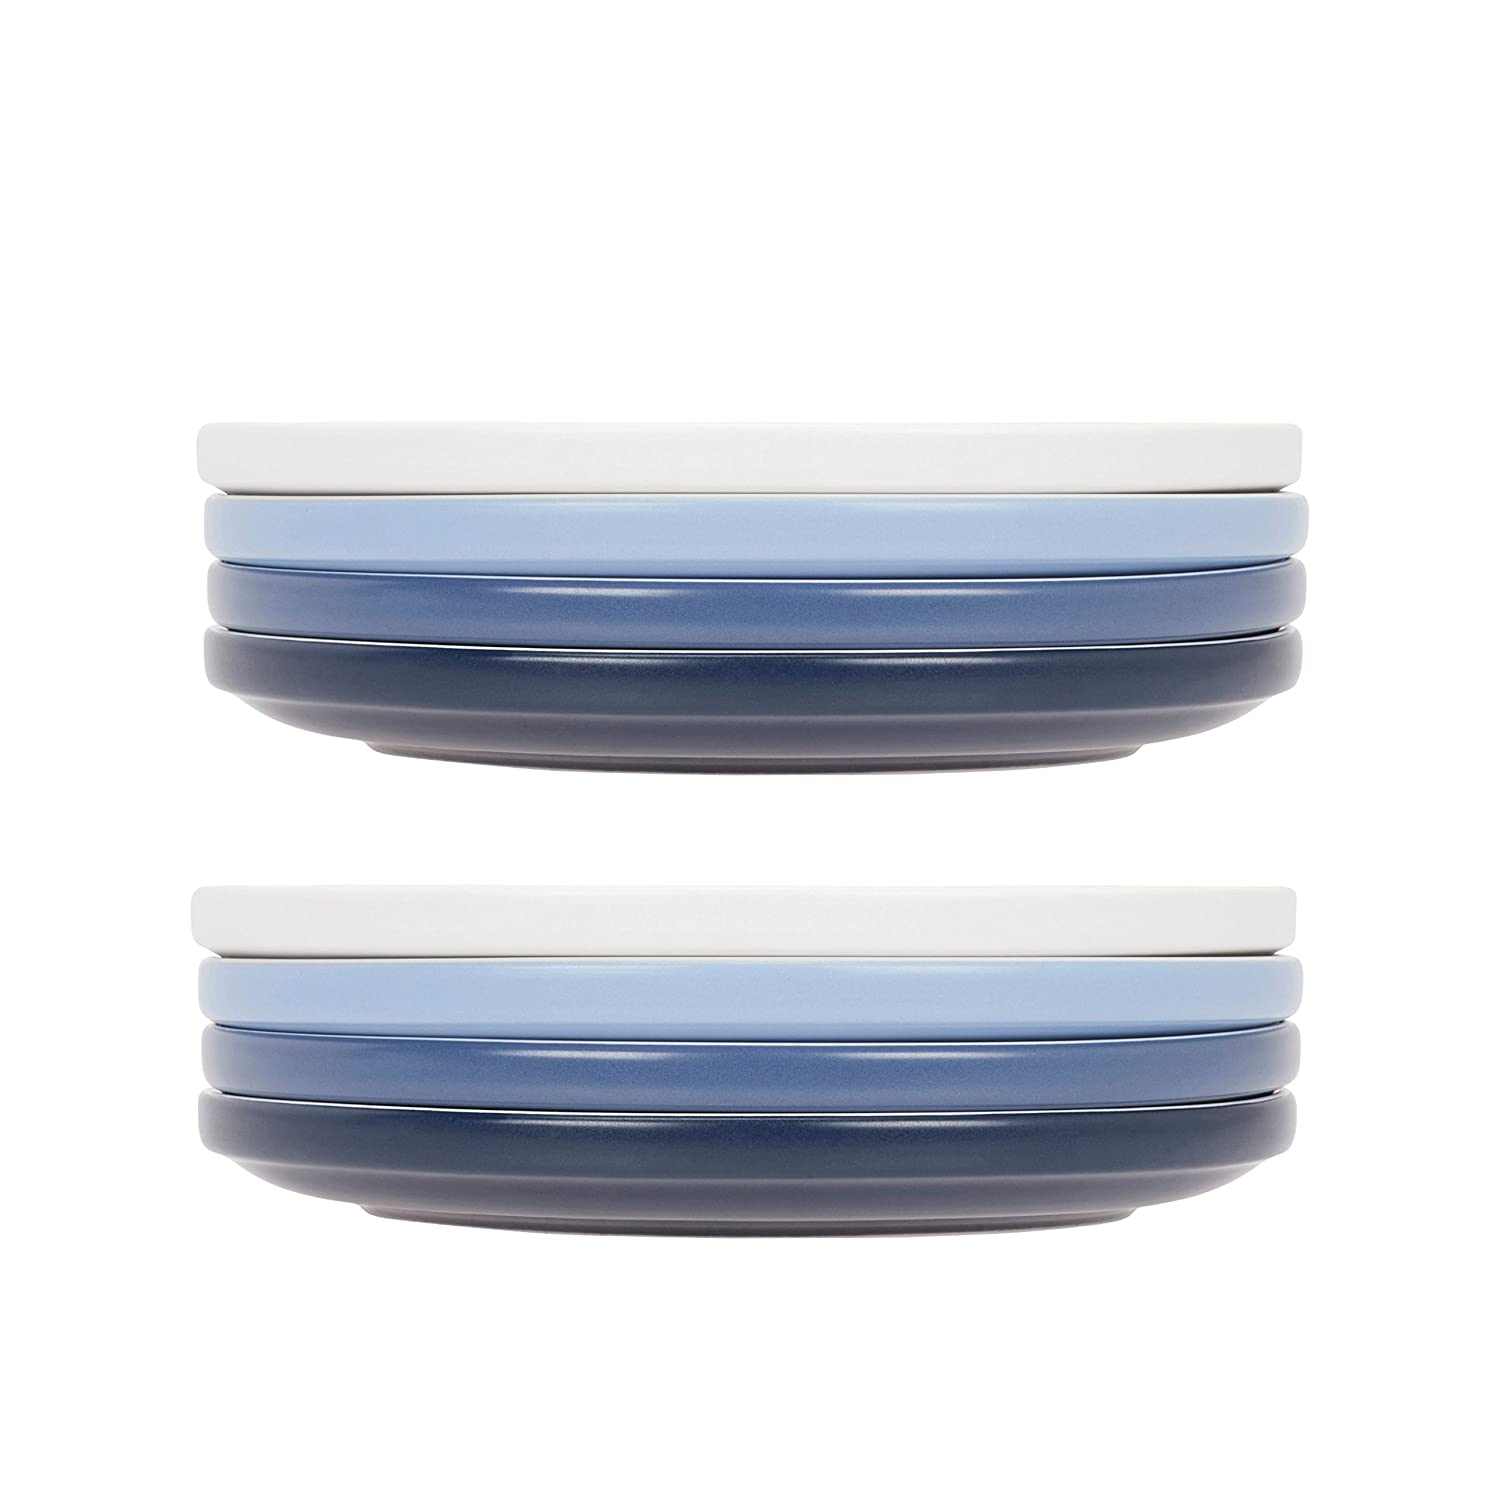 Compact Living - Stackable Stoneware Side Plates - White Light/Mid/Dark Blue - 20.5 cm/7'9 in - Set of 8